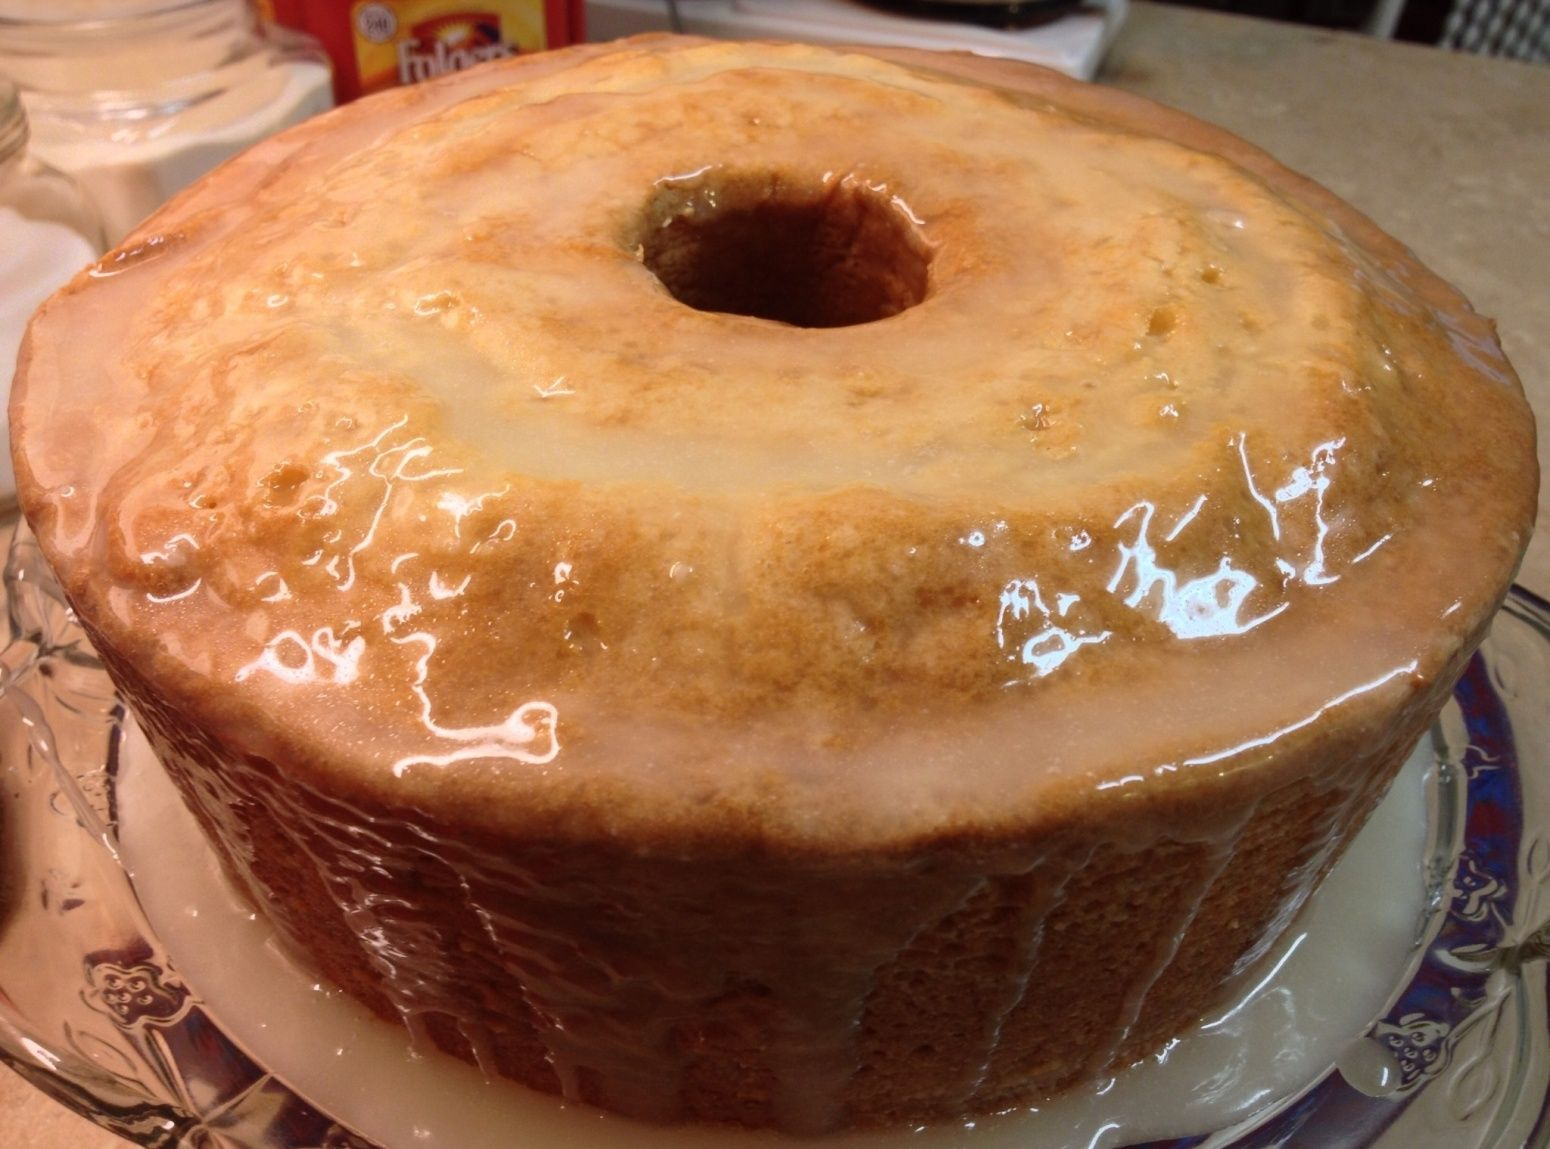 Sour Cream Buttermilk Pound Cake Buttermilk Pound Cake Sour Cream Pound Cake Butter Pound Cake